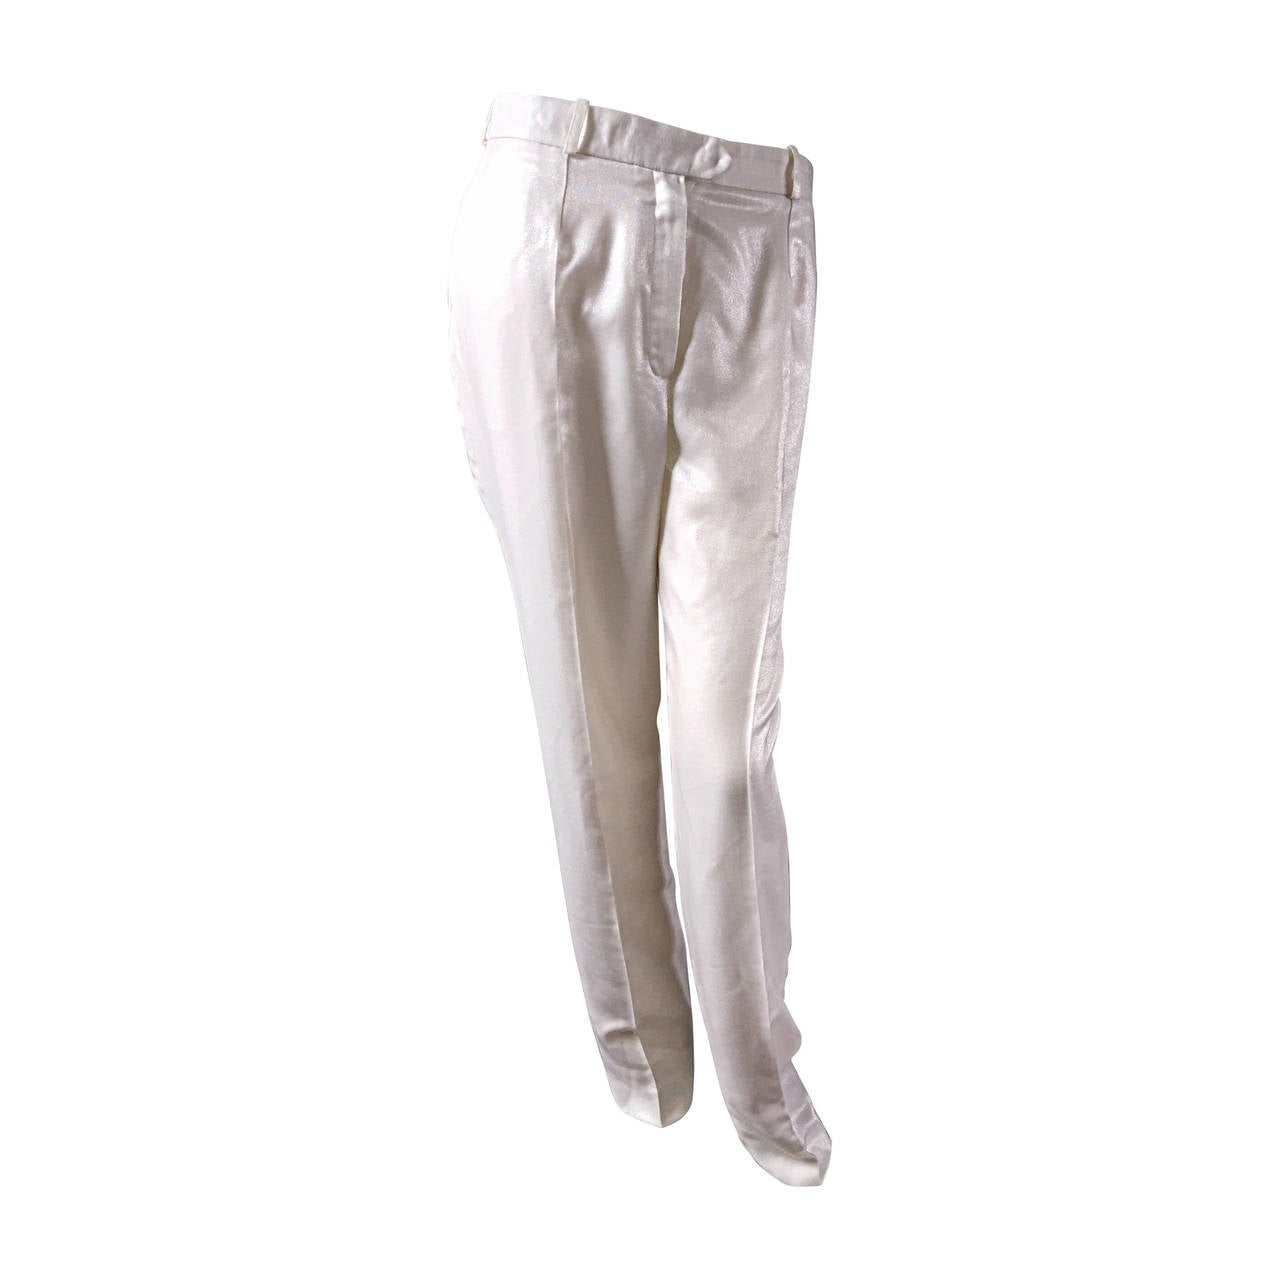 Christian Dior by Galliano Ivory Metallic ' Le Smoking ' Shimmer Trouser Pants